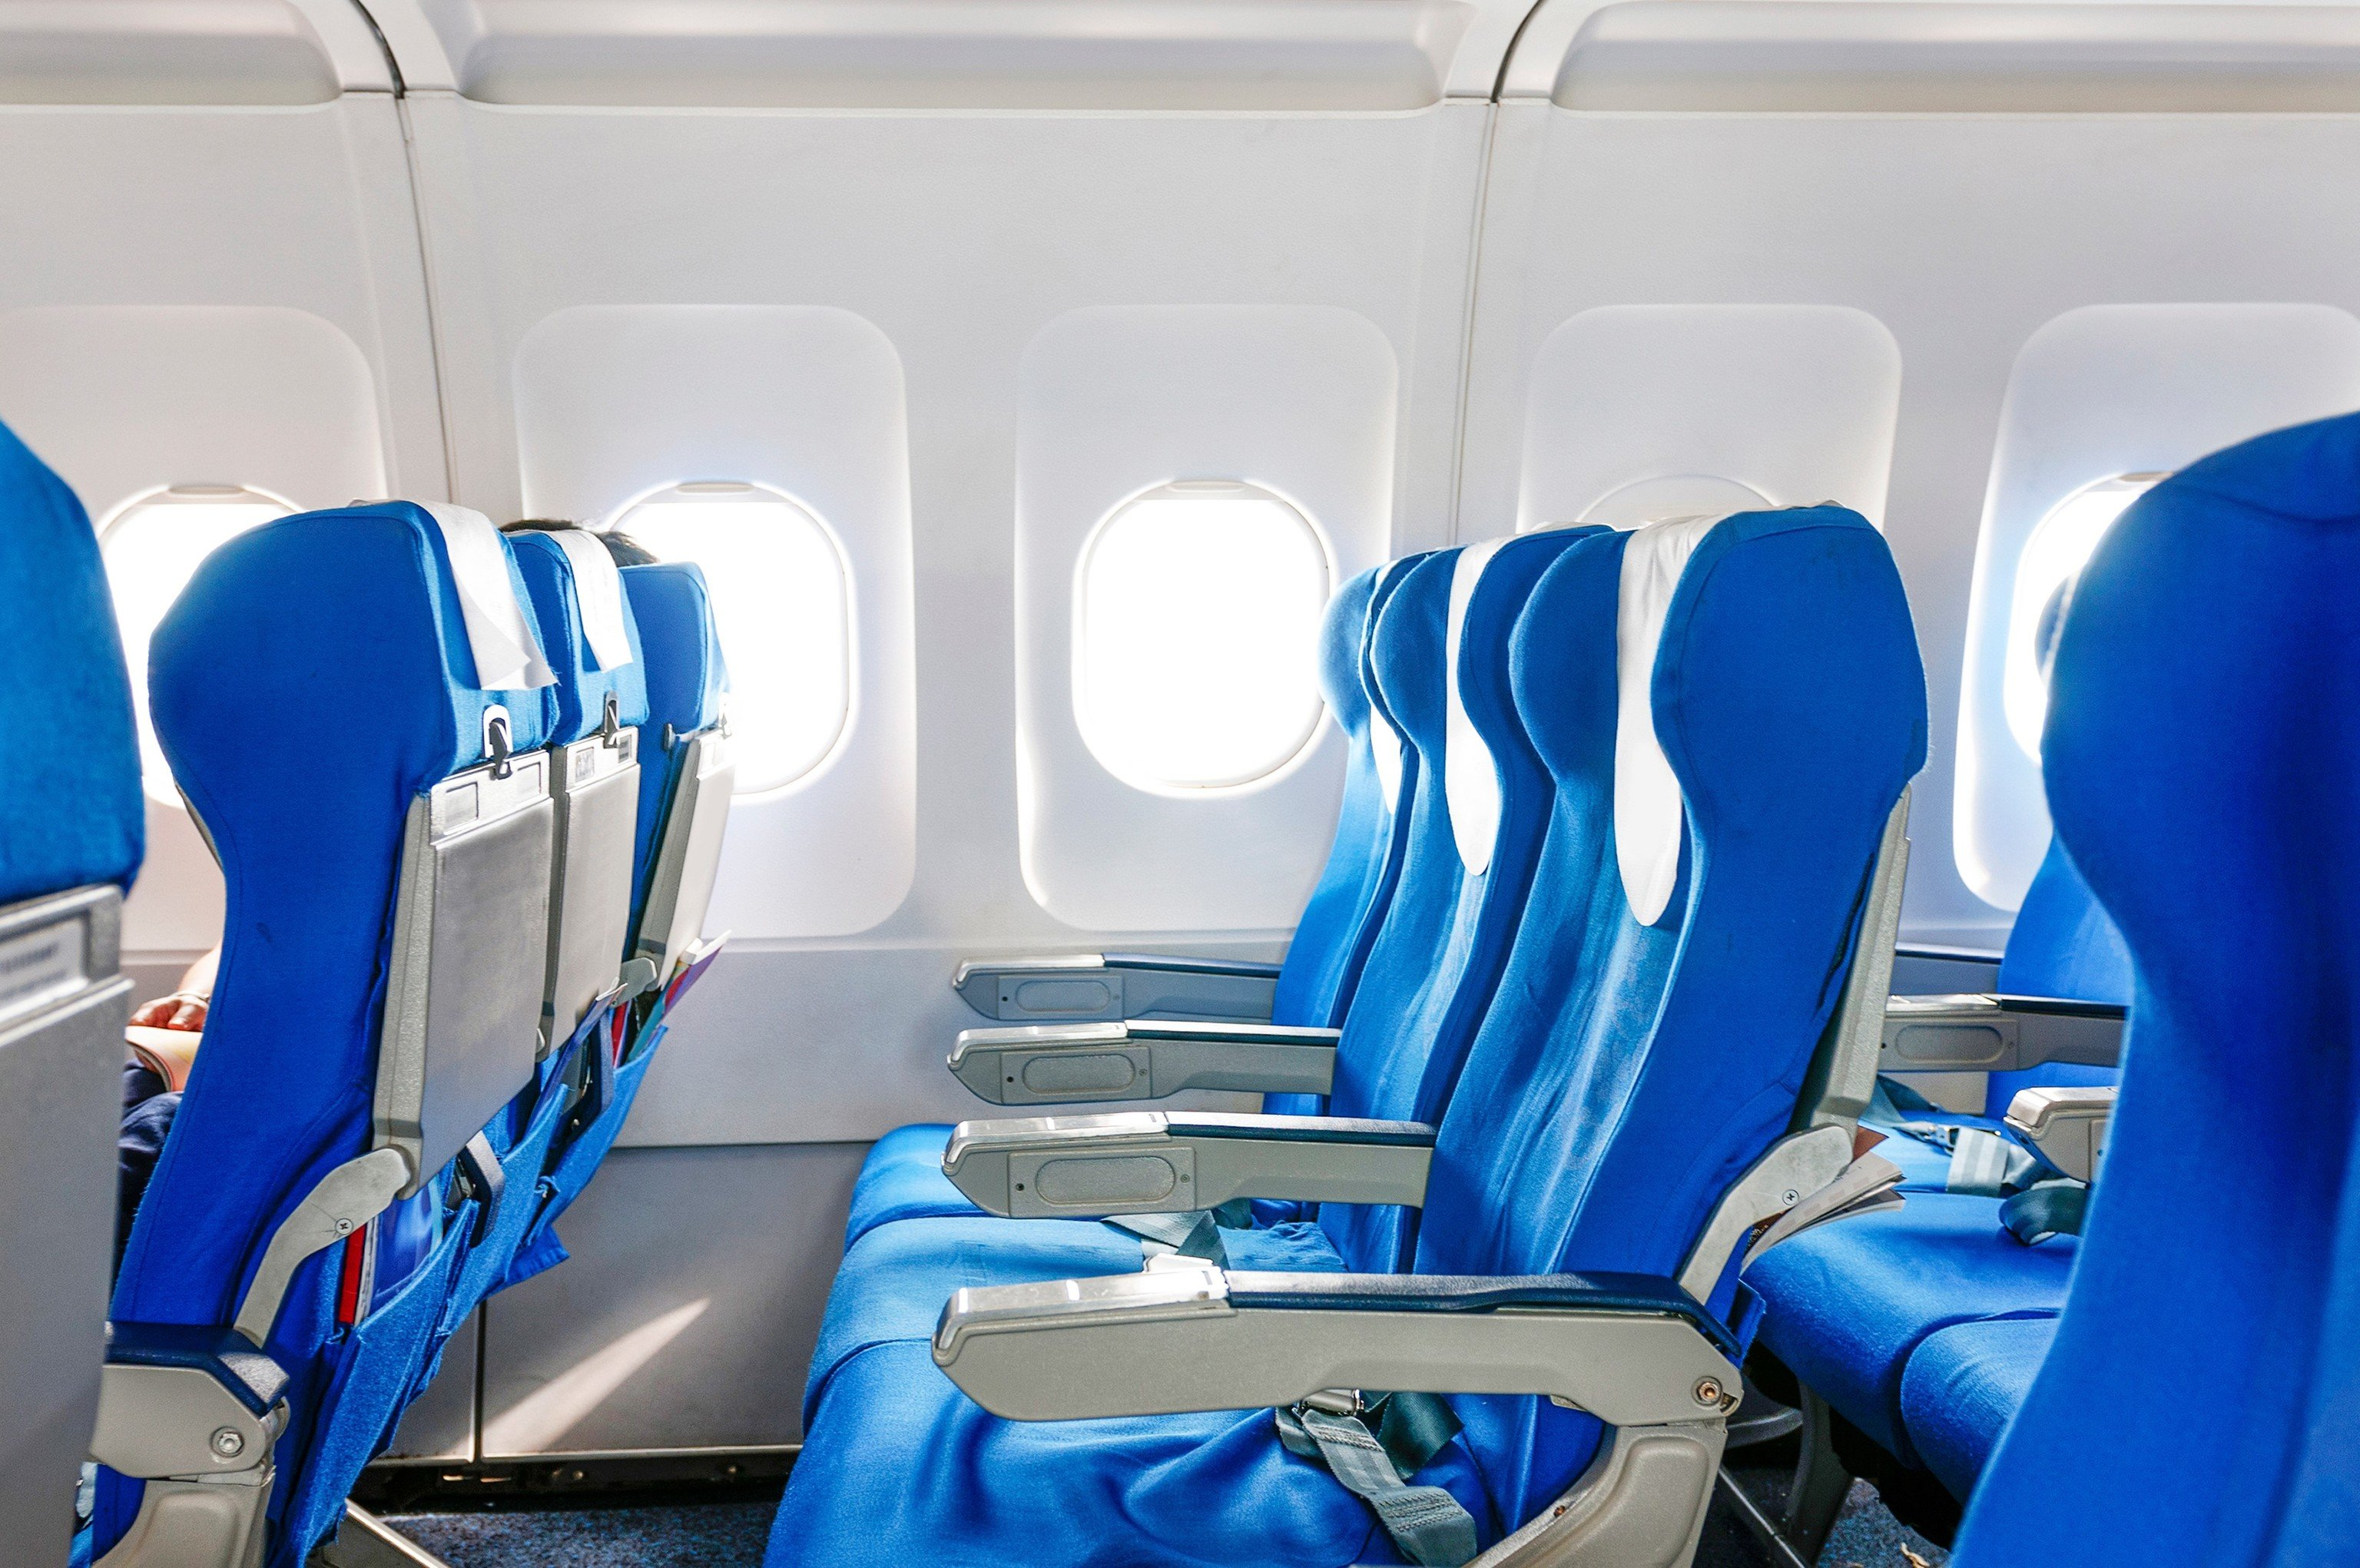 Hotels News Travel Tips Trip Ideas Cabin airline blue chair room scene aircraft cabin vehicle passenger aviation lined van